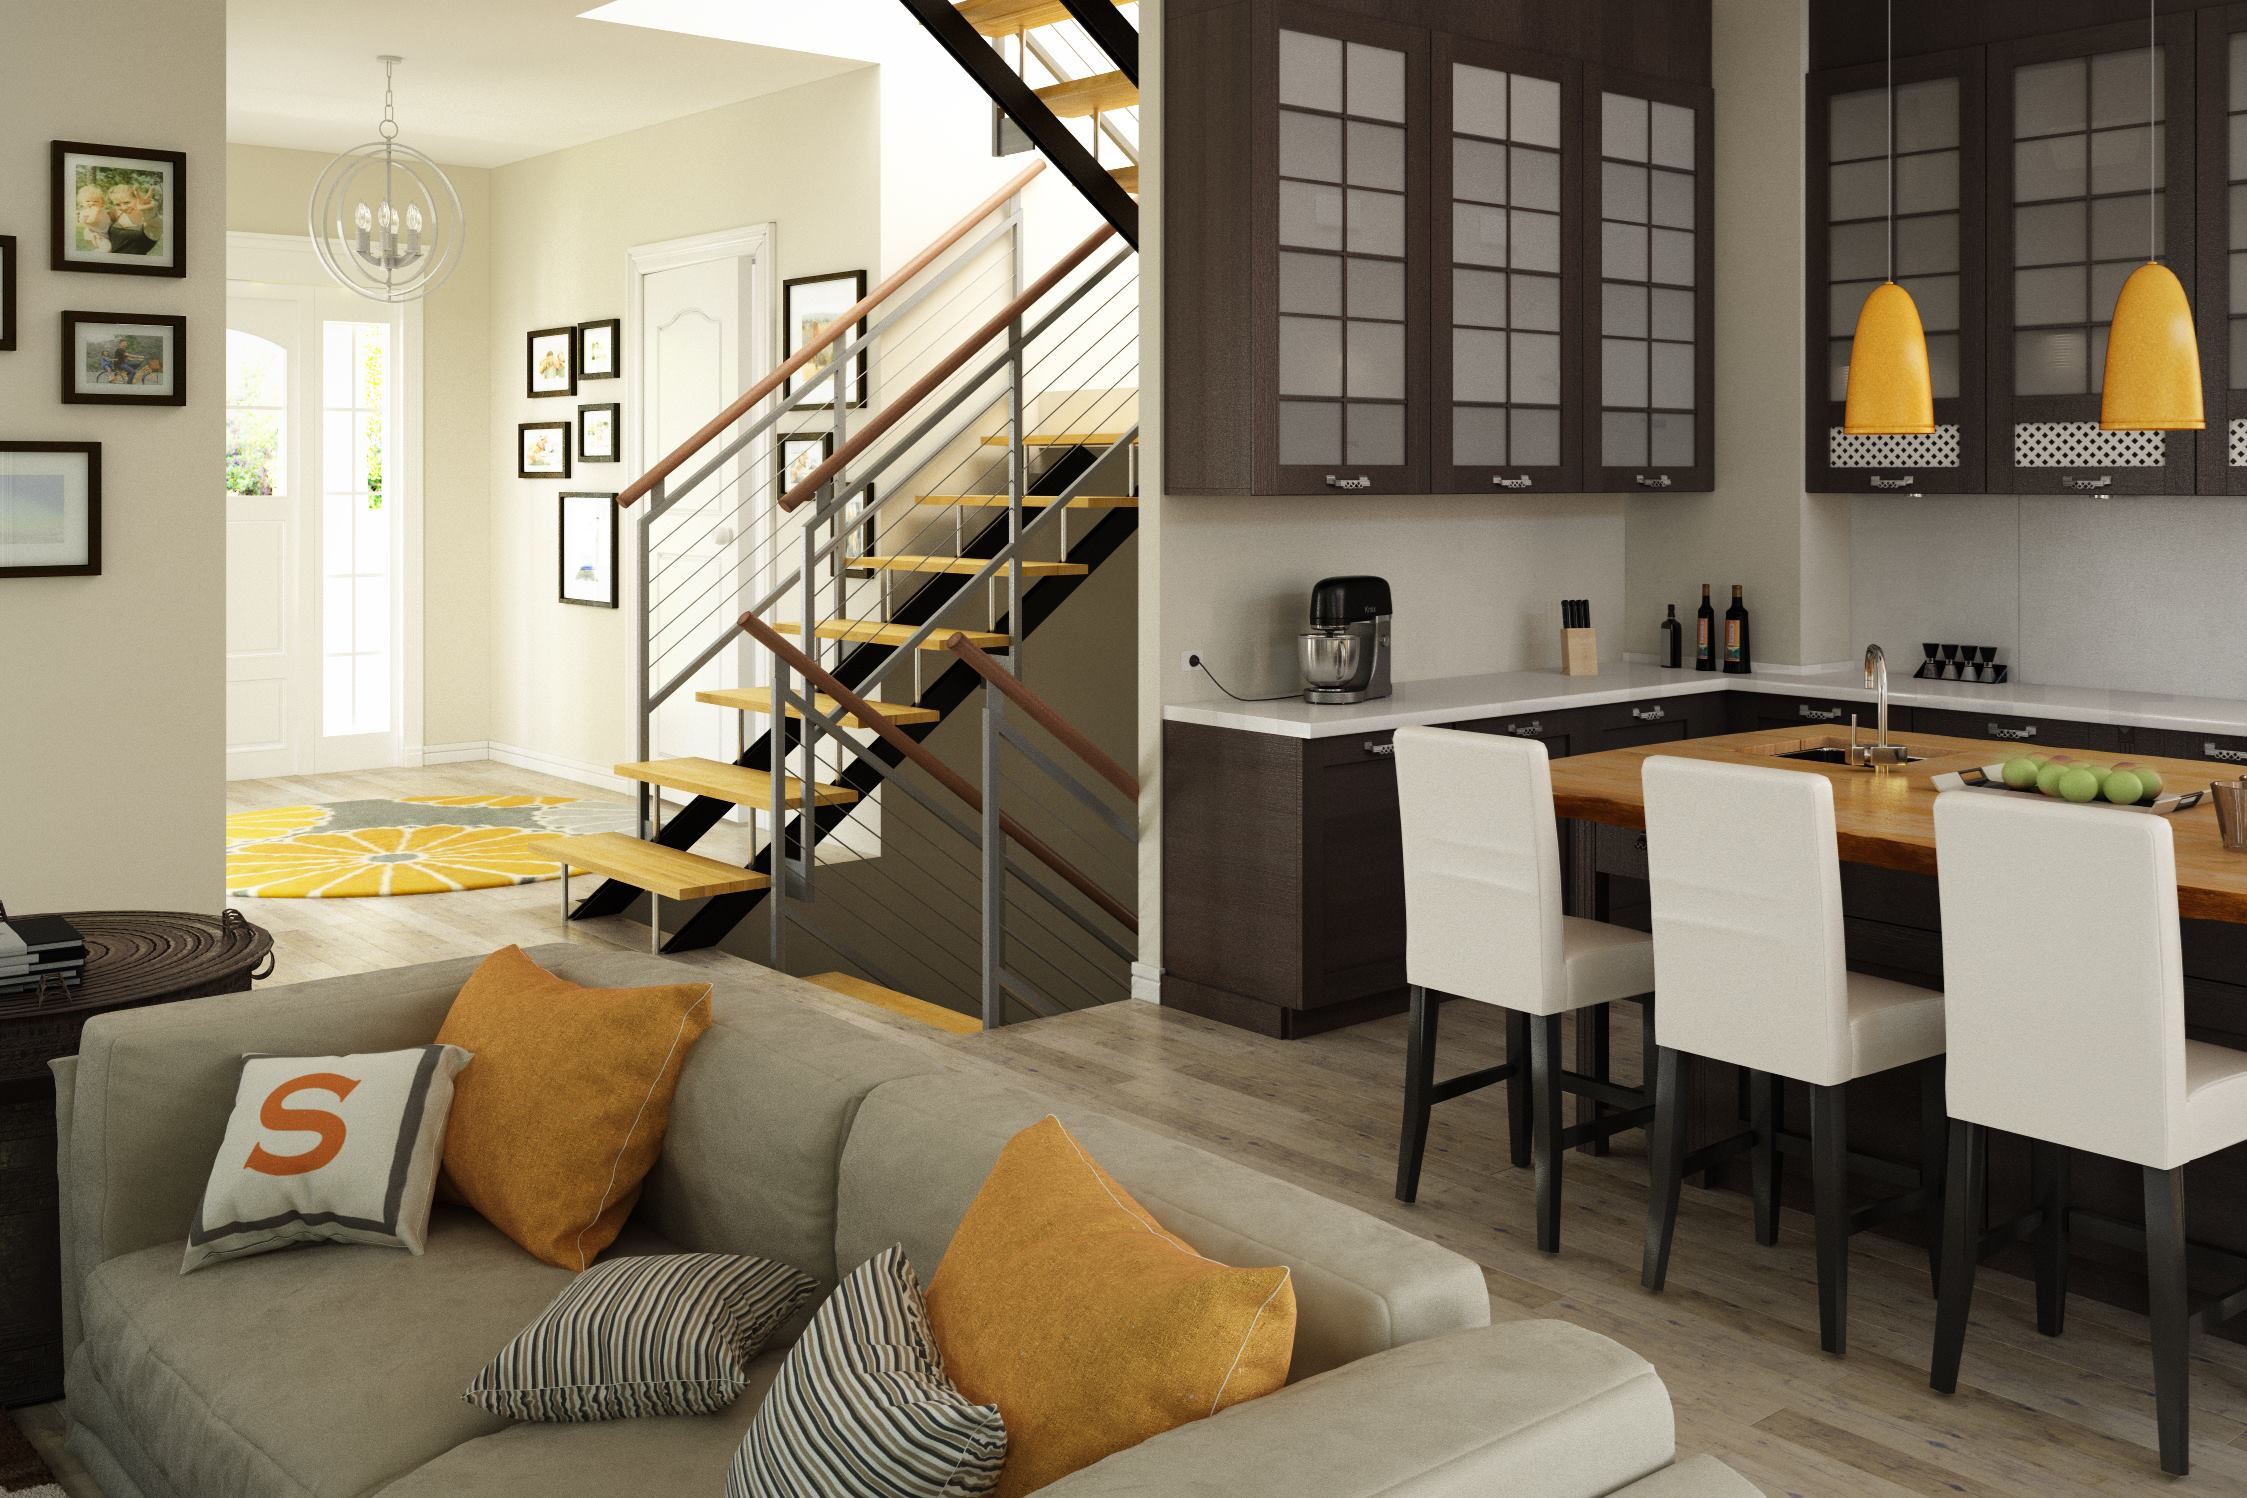 Active House Interior Design Driven By Healthy Product